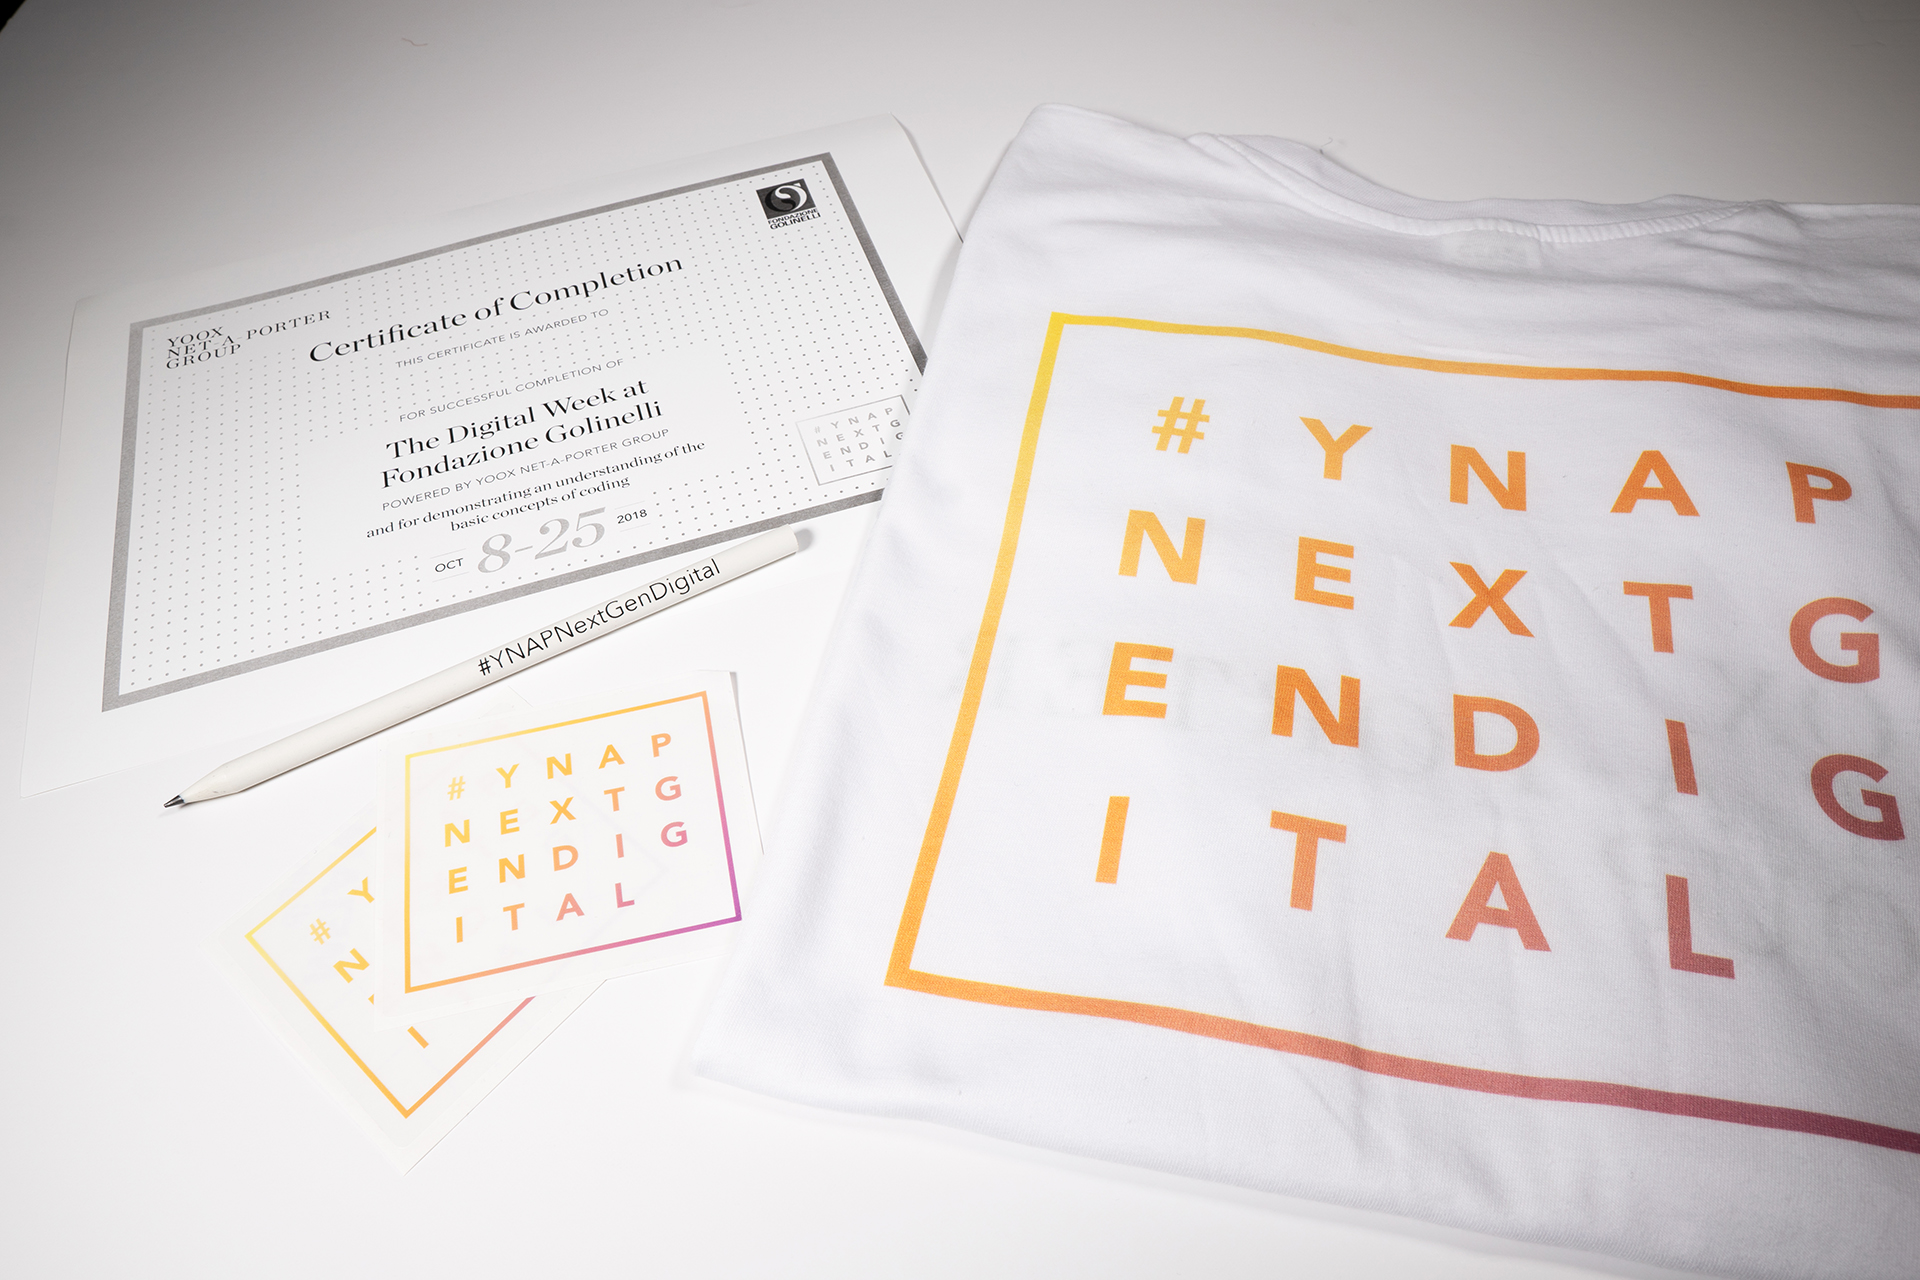 Branded t-Shirt, stickers, pencil and certificate